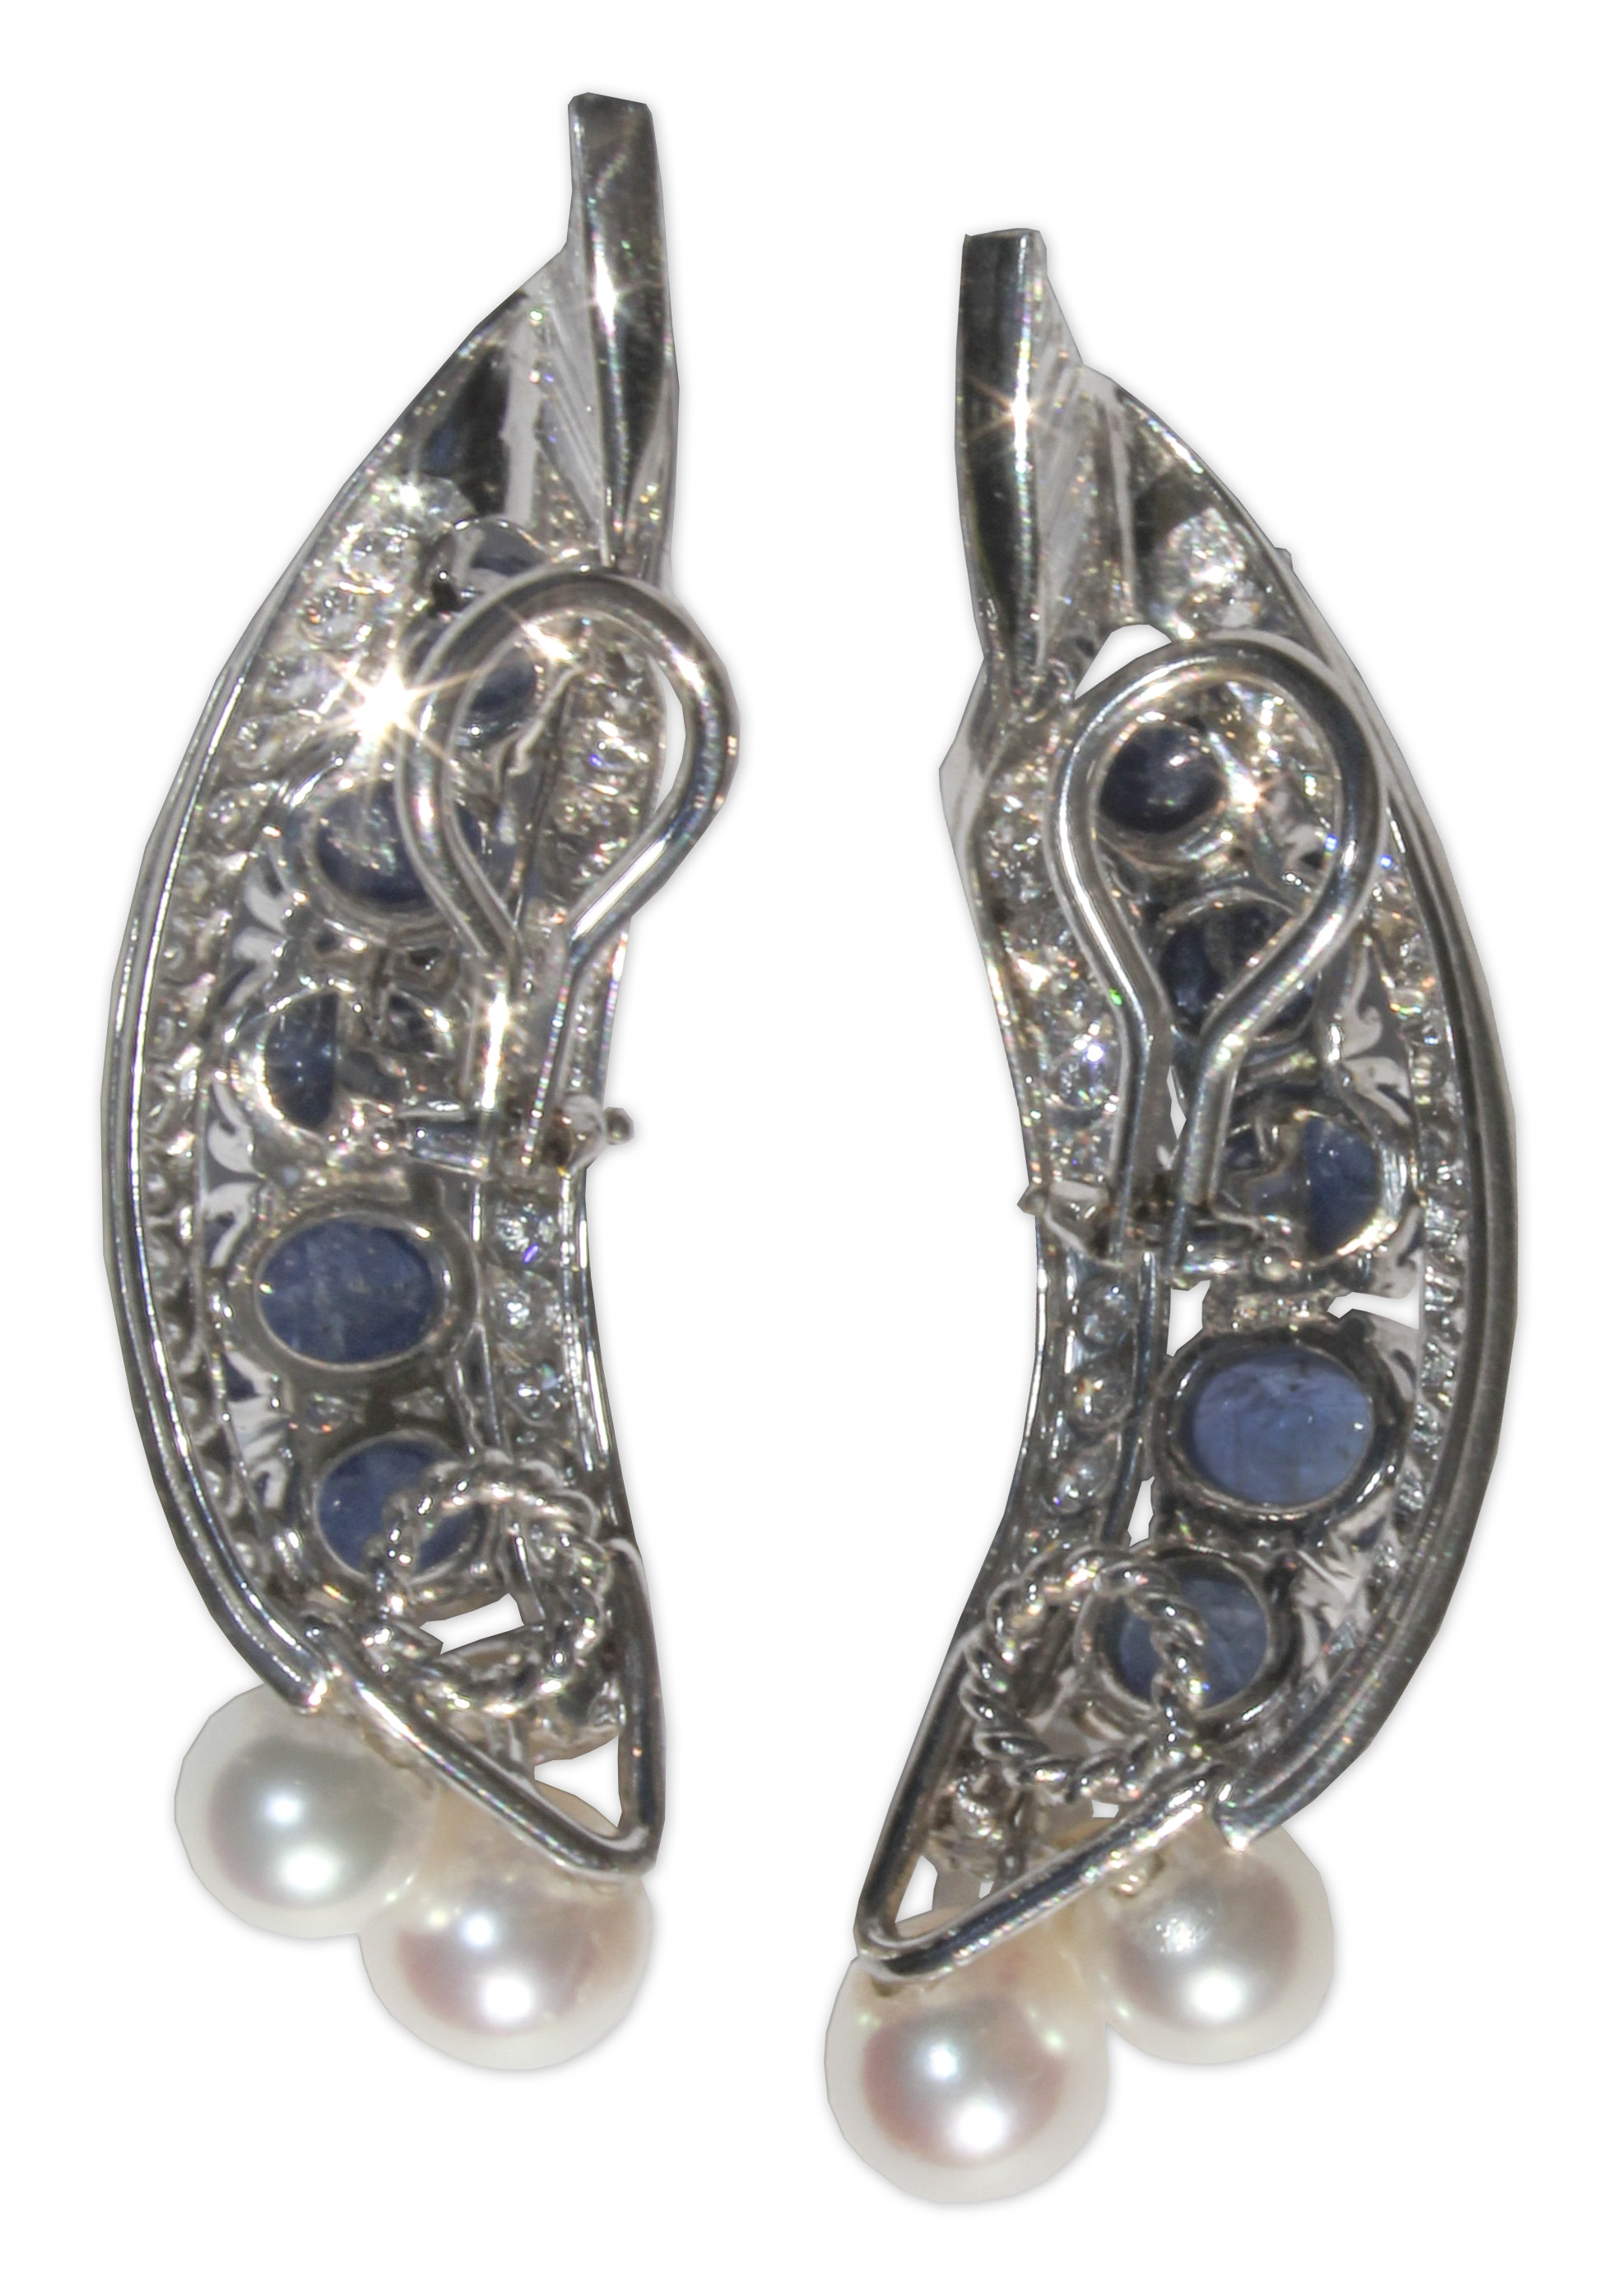 gold jewels earrings christie christies diamond s webb eco david online and